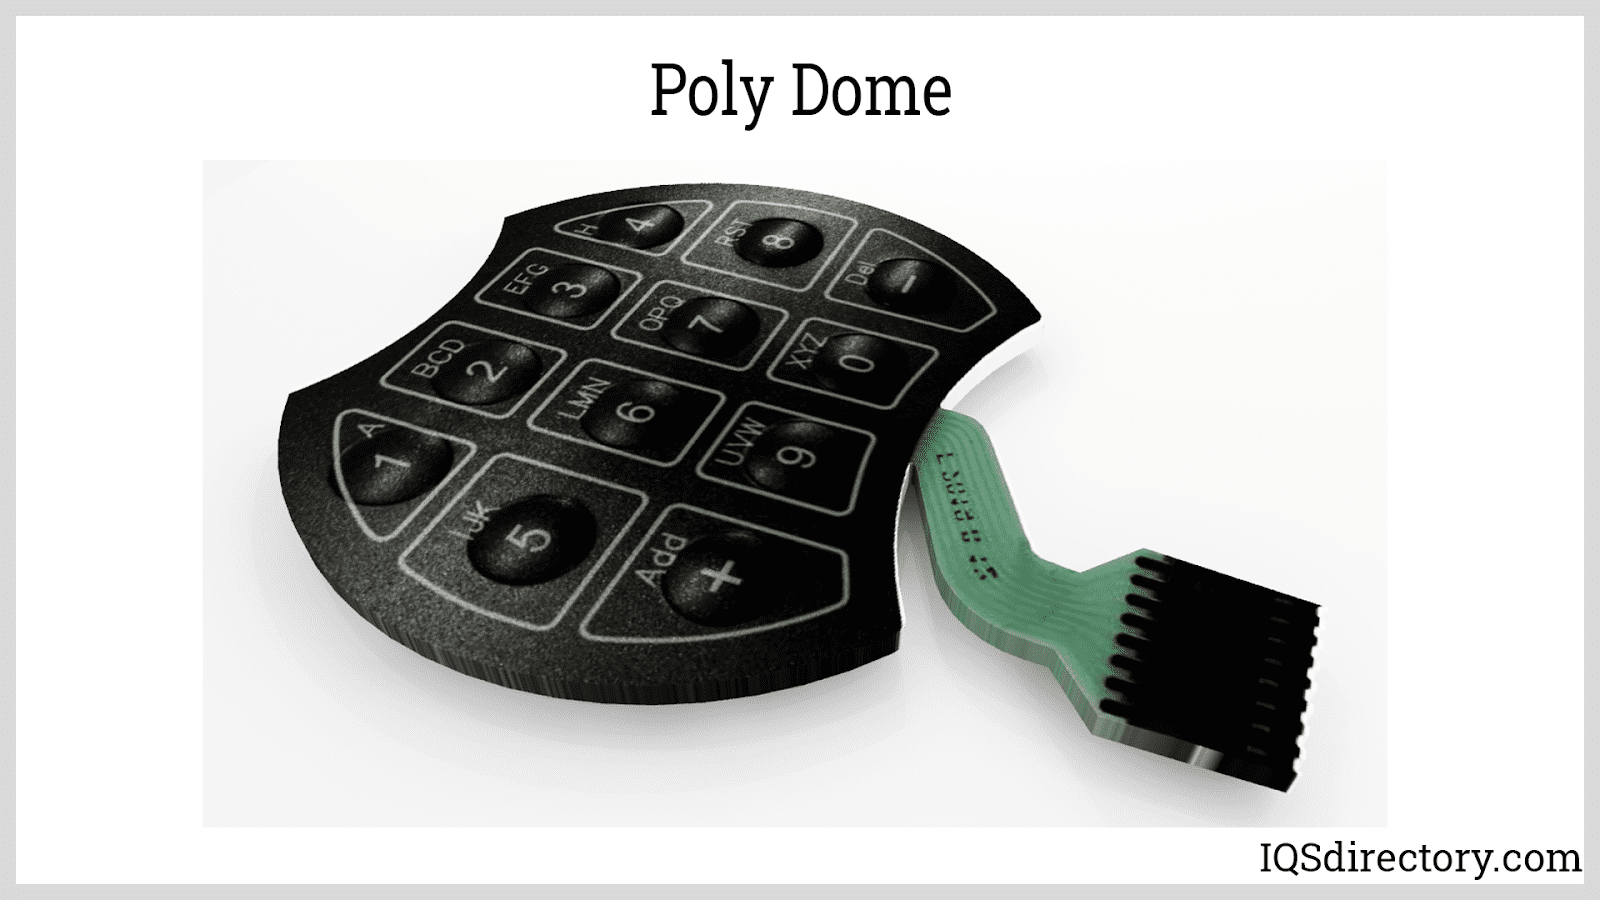 Poly Dome